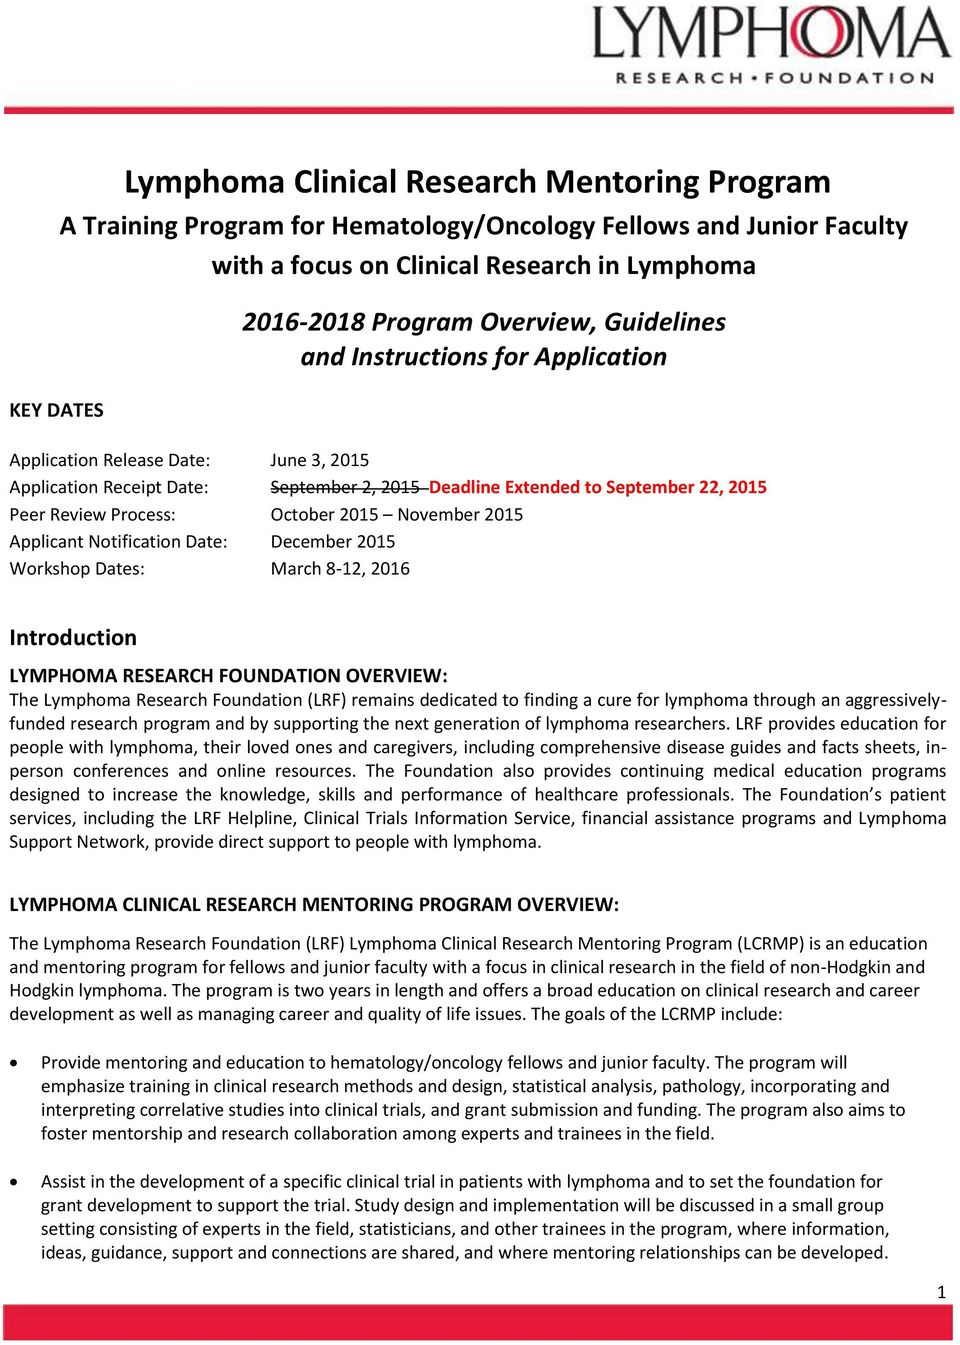 Lymphoma Clinical Research Mentoring Program - PDF